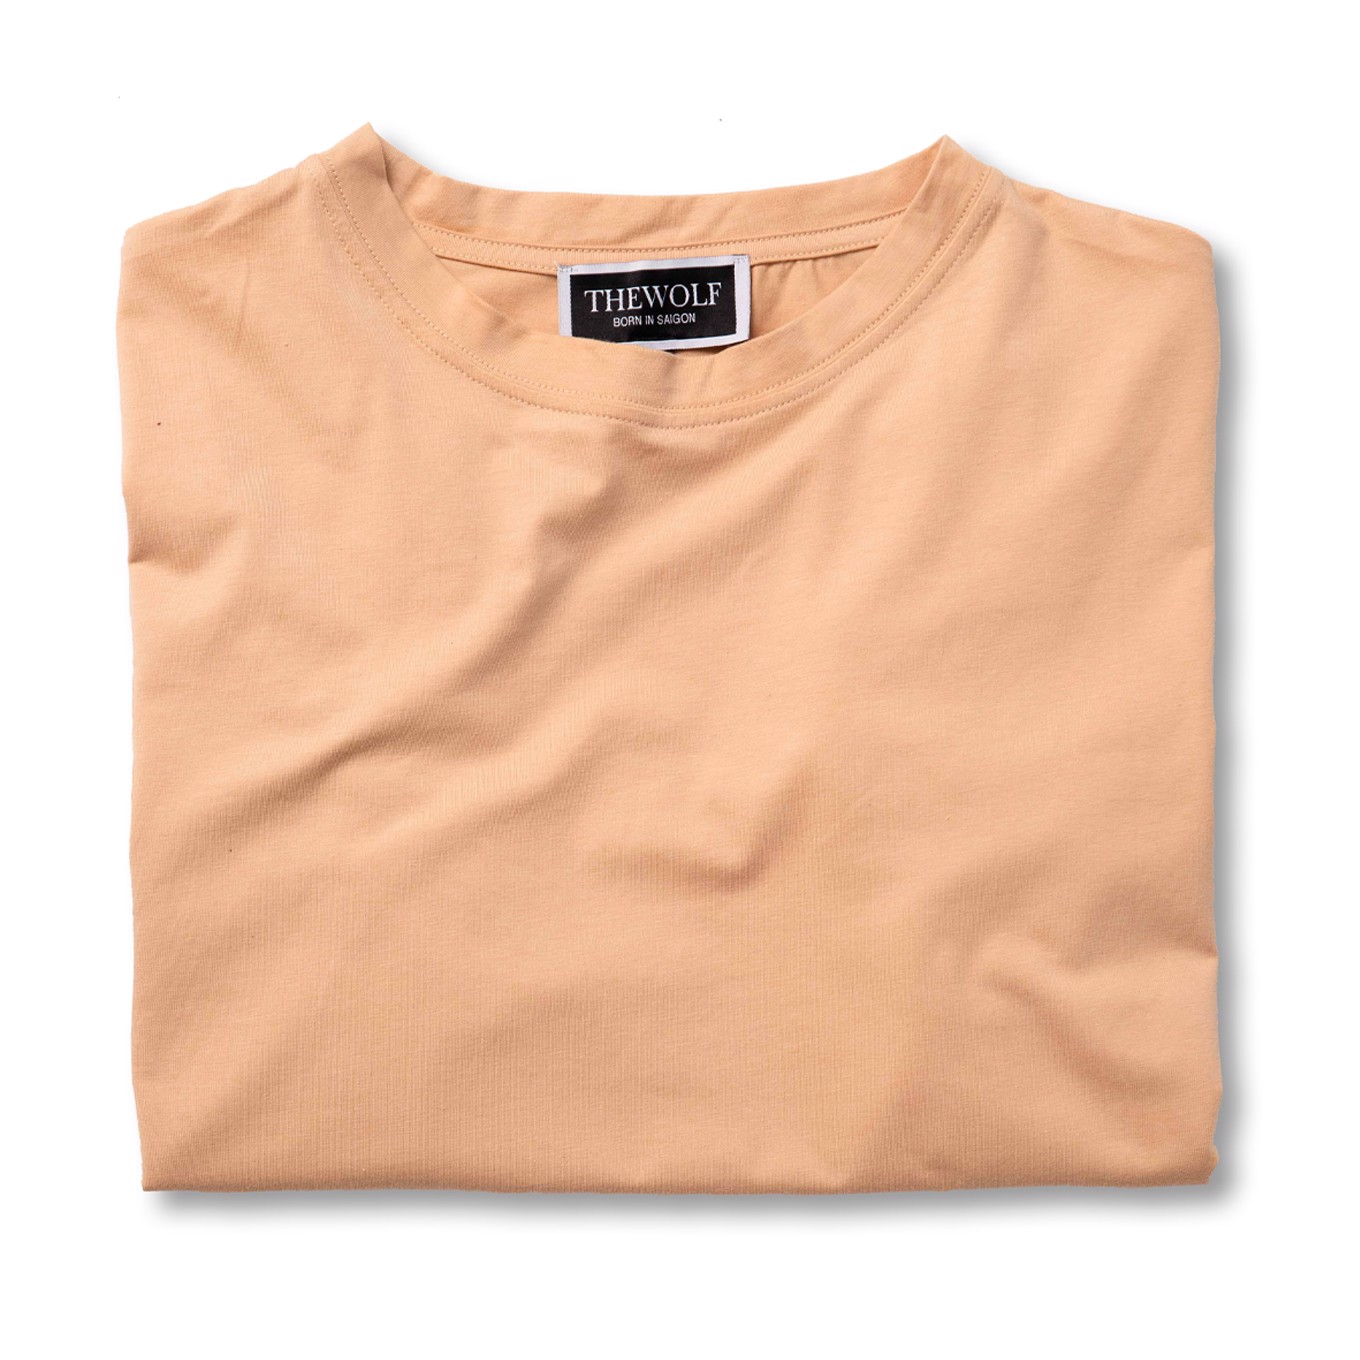 THE WOLF BASIC TEE - TAN